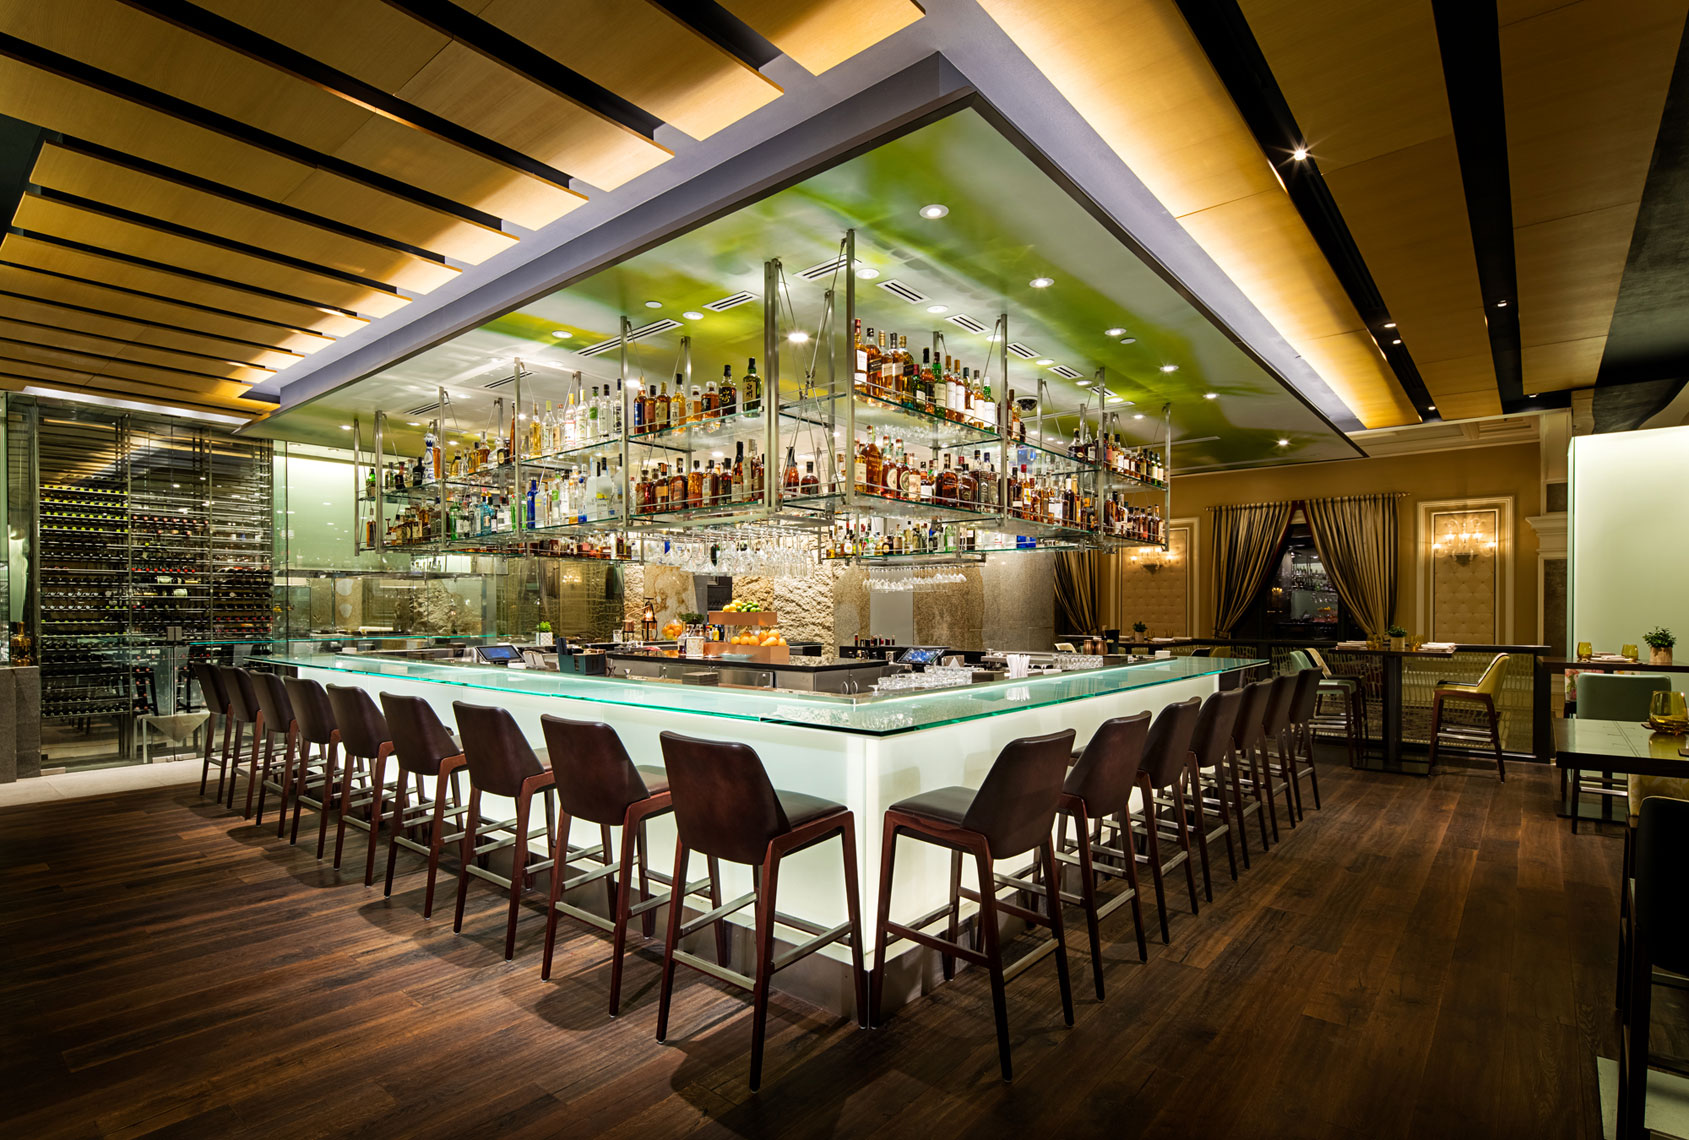 jeff-green-resort-restaurant-interiors-harvest-bar